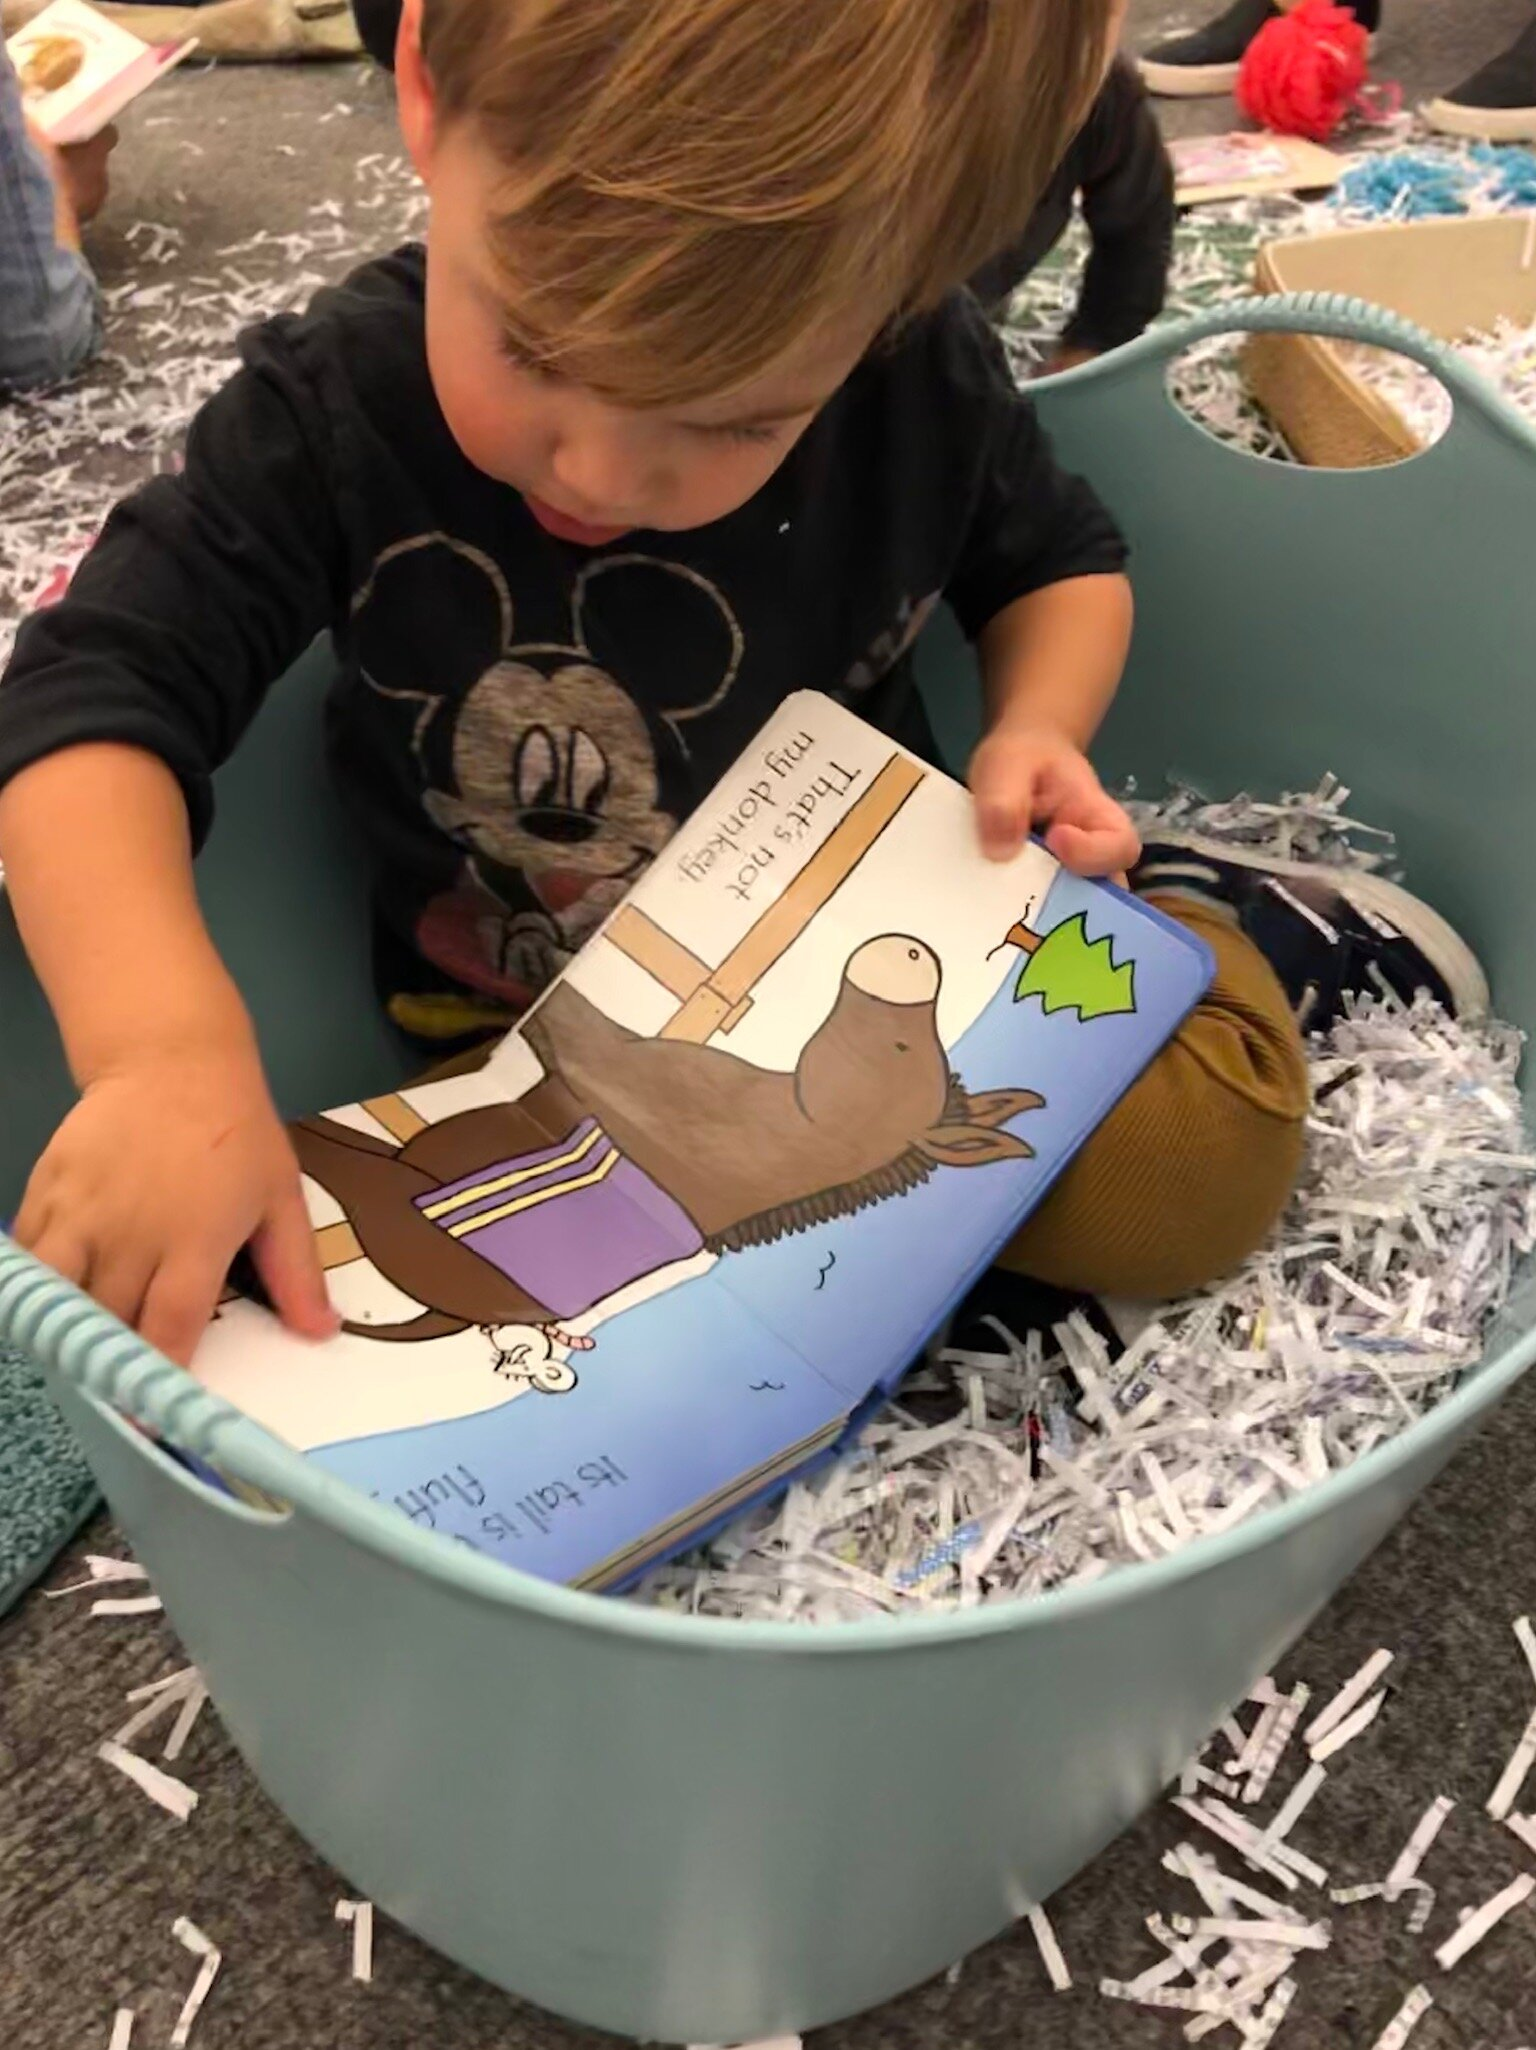 Books & Babes - The littlest book club for babies and caregivers to learn about play together.